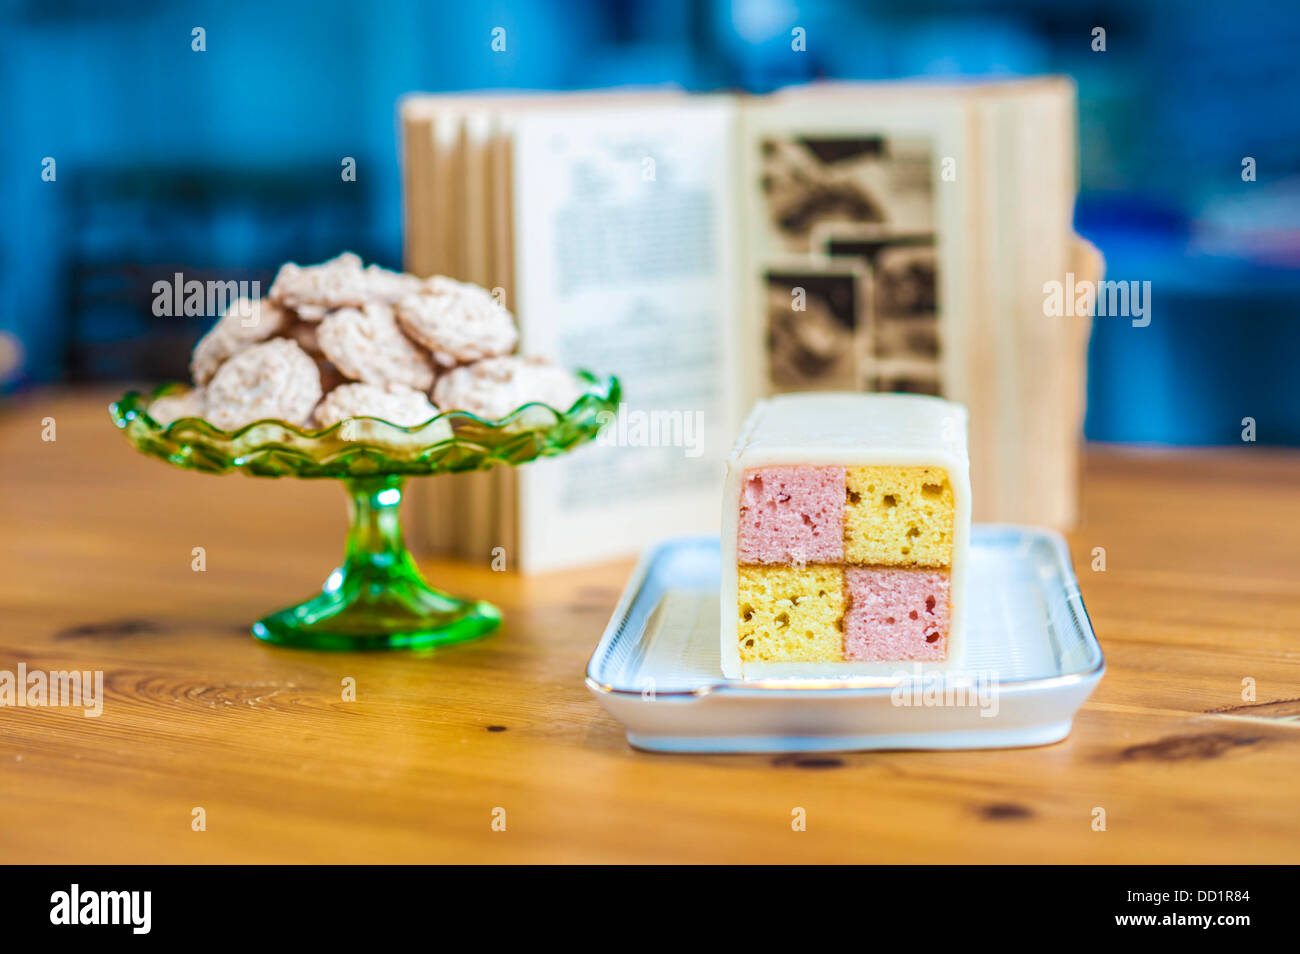 Yummy sponge cake and cookies for you. Enjoy them. Baking book in the background. Stock Photo